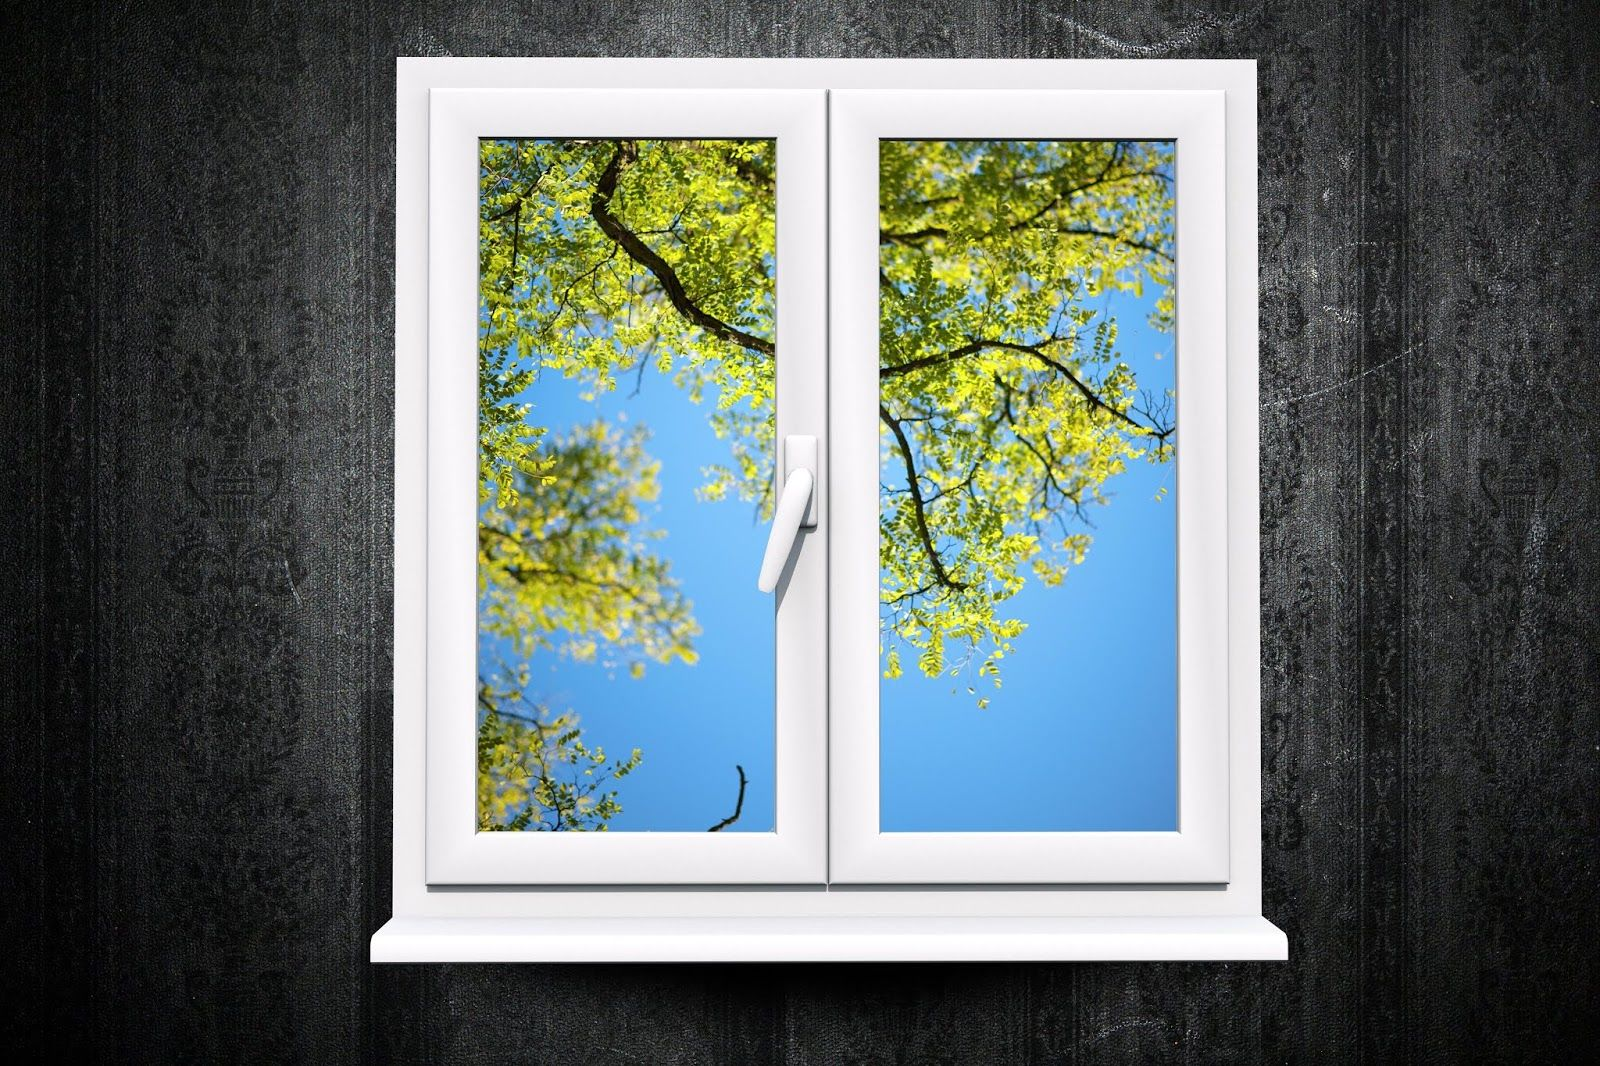 How will uPVC Windows & Doors Increase the Value of My House?